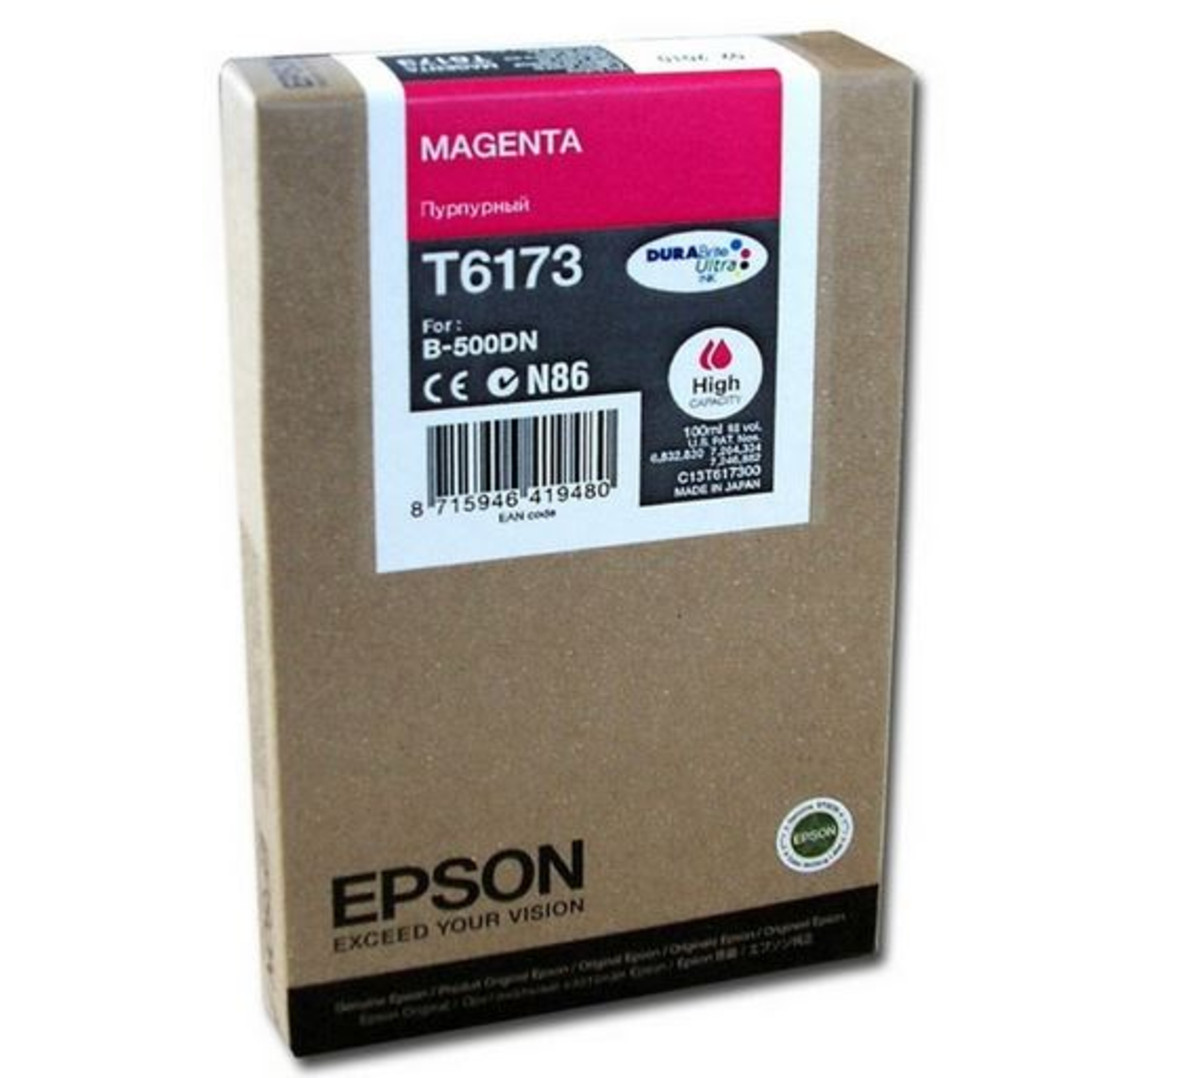 Epson C13T617300 Magenta Ink Cartridge - High Yield